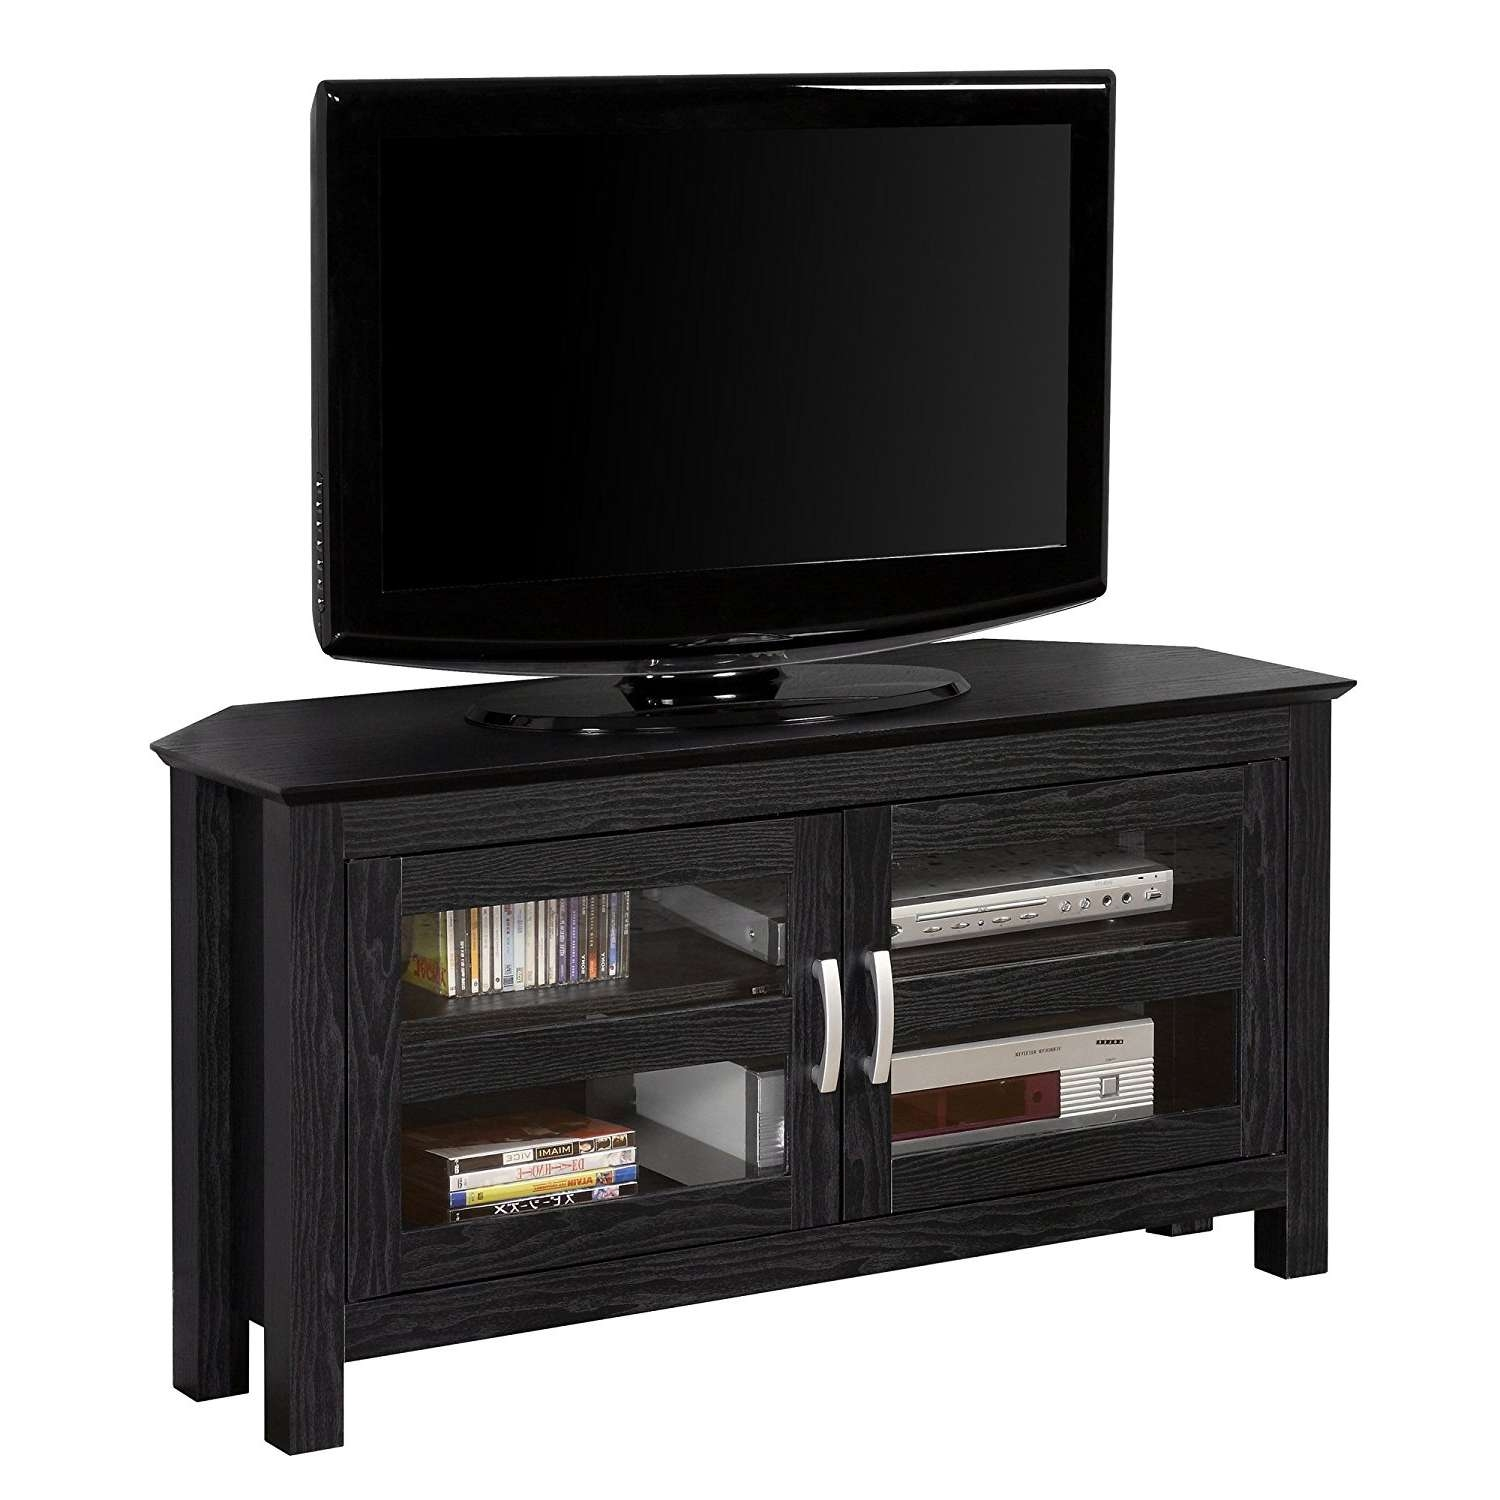 Tv Stand : 40 Stunning Small Black Tv Stand Photo Inspirations In Small Black Tv Cabinets (View 16 of 20)